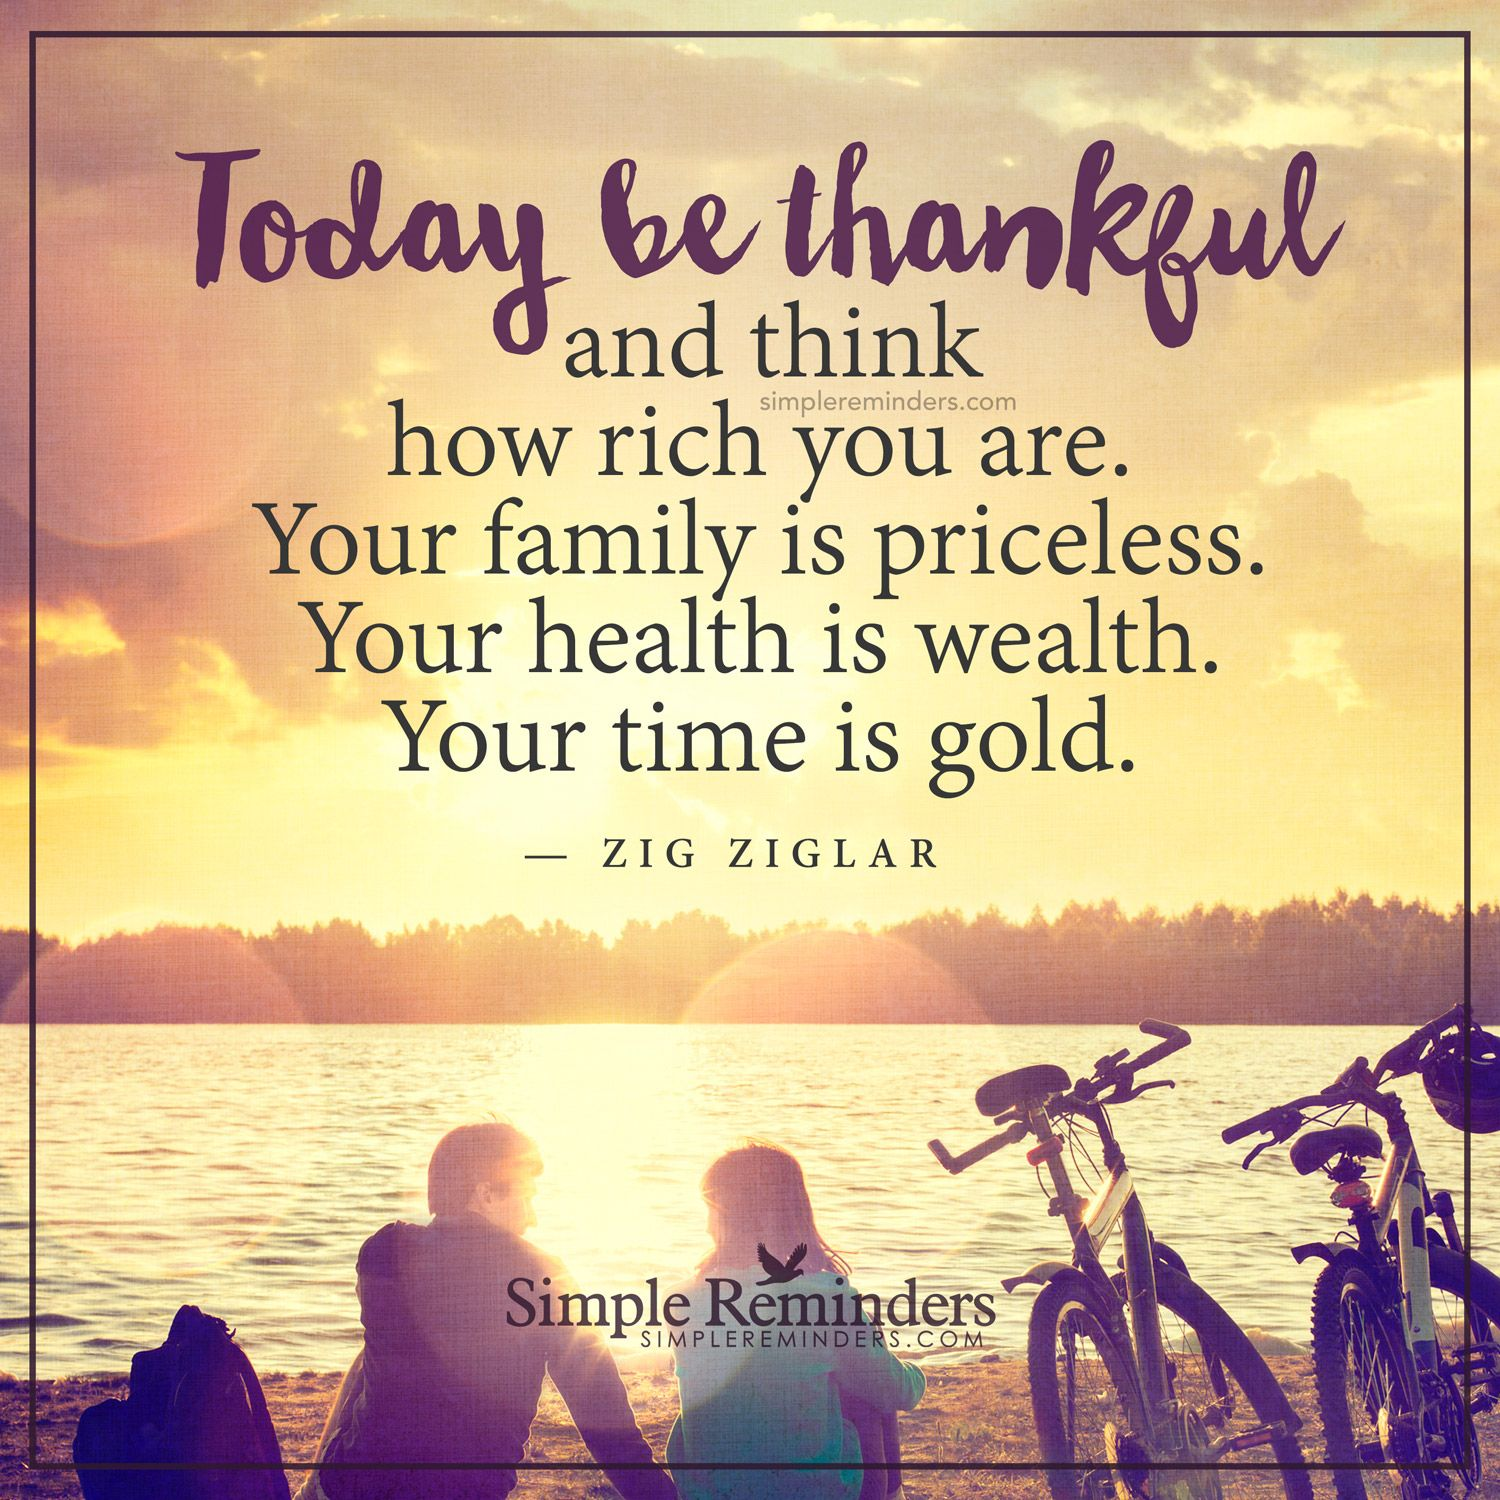 Today be thankful Today be thankful and think how rich you